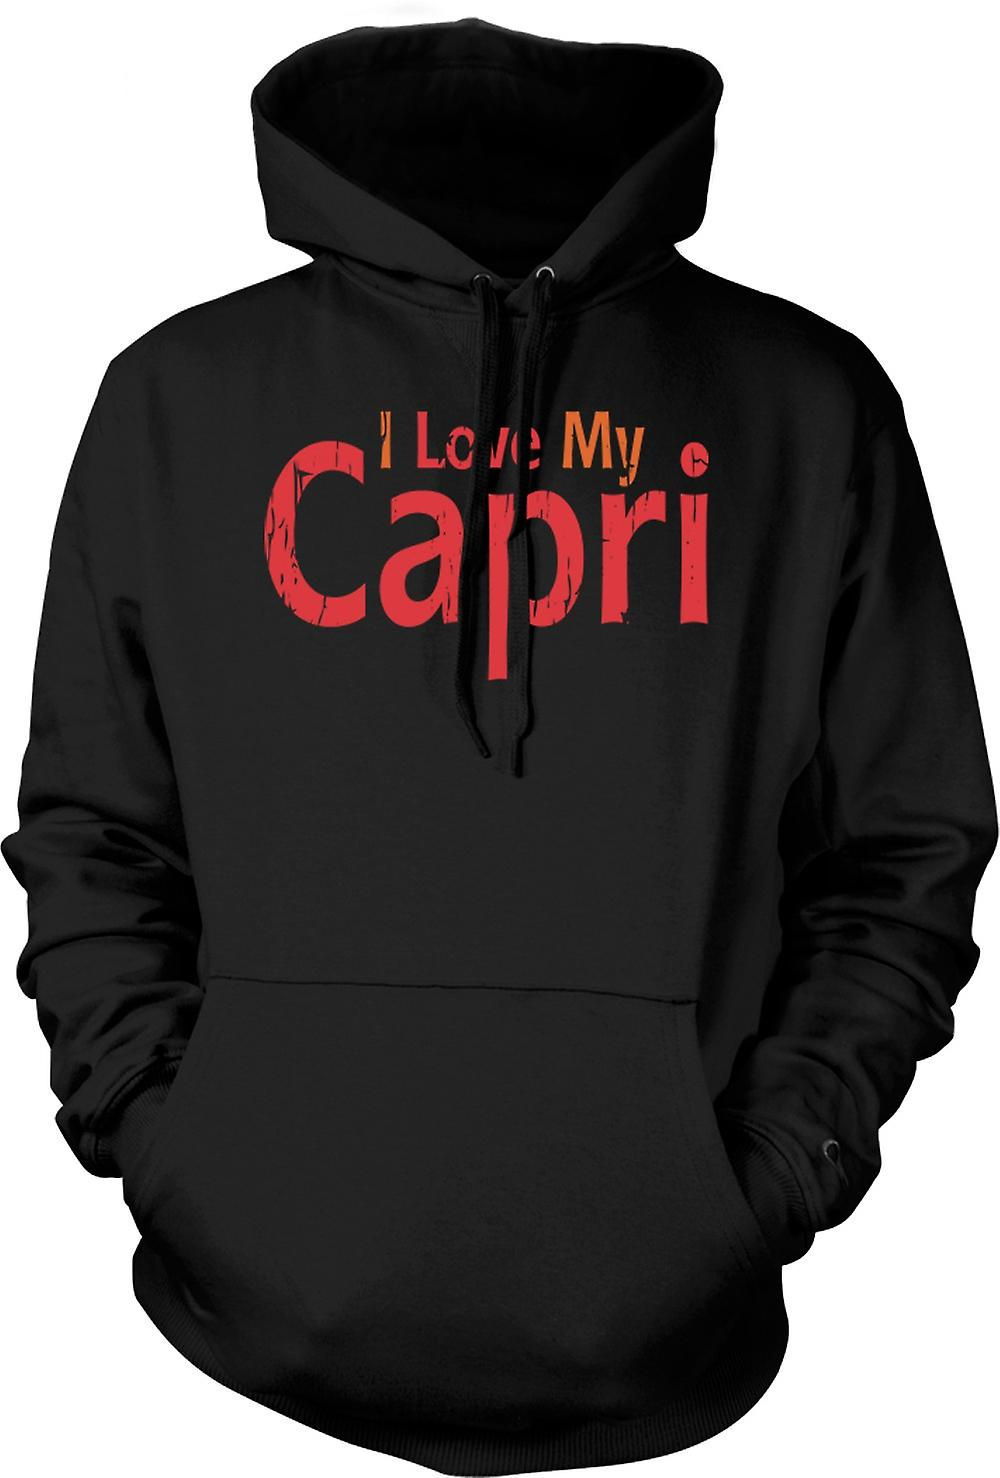 Mens Hoodie - I Love My Capri - Car Enthusiast